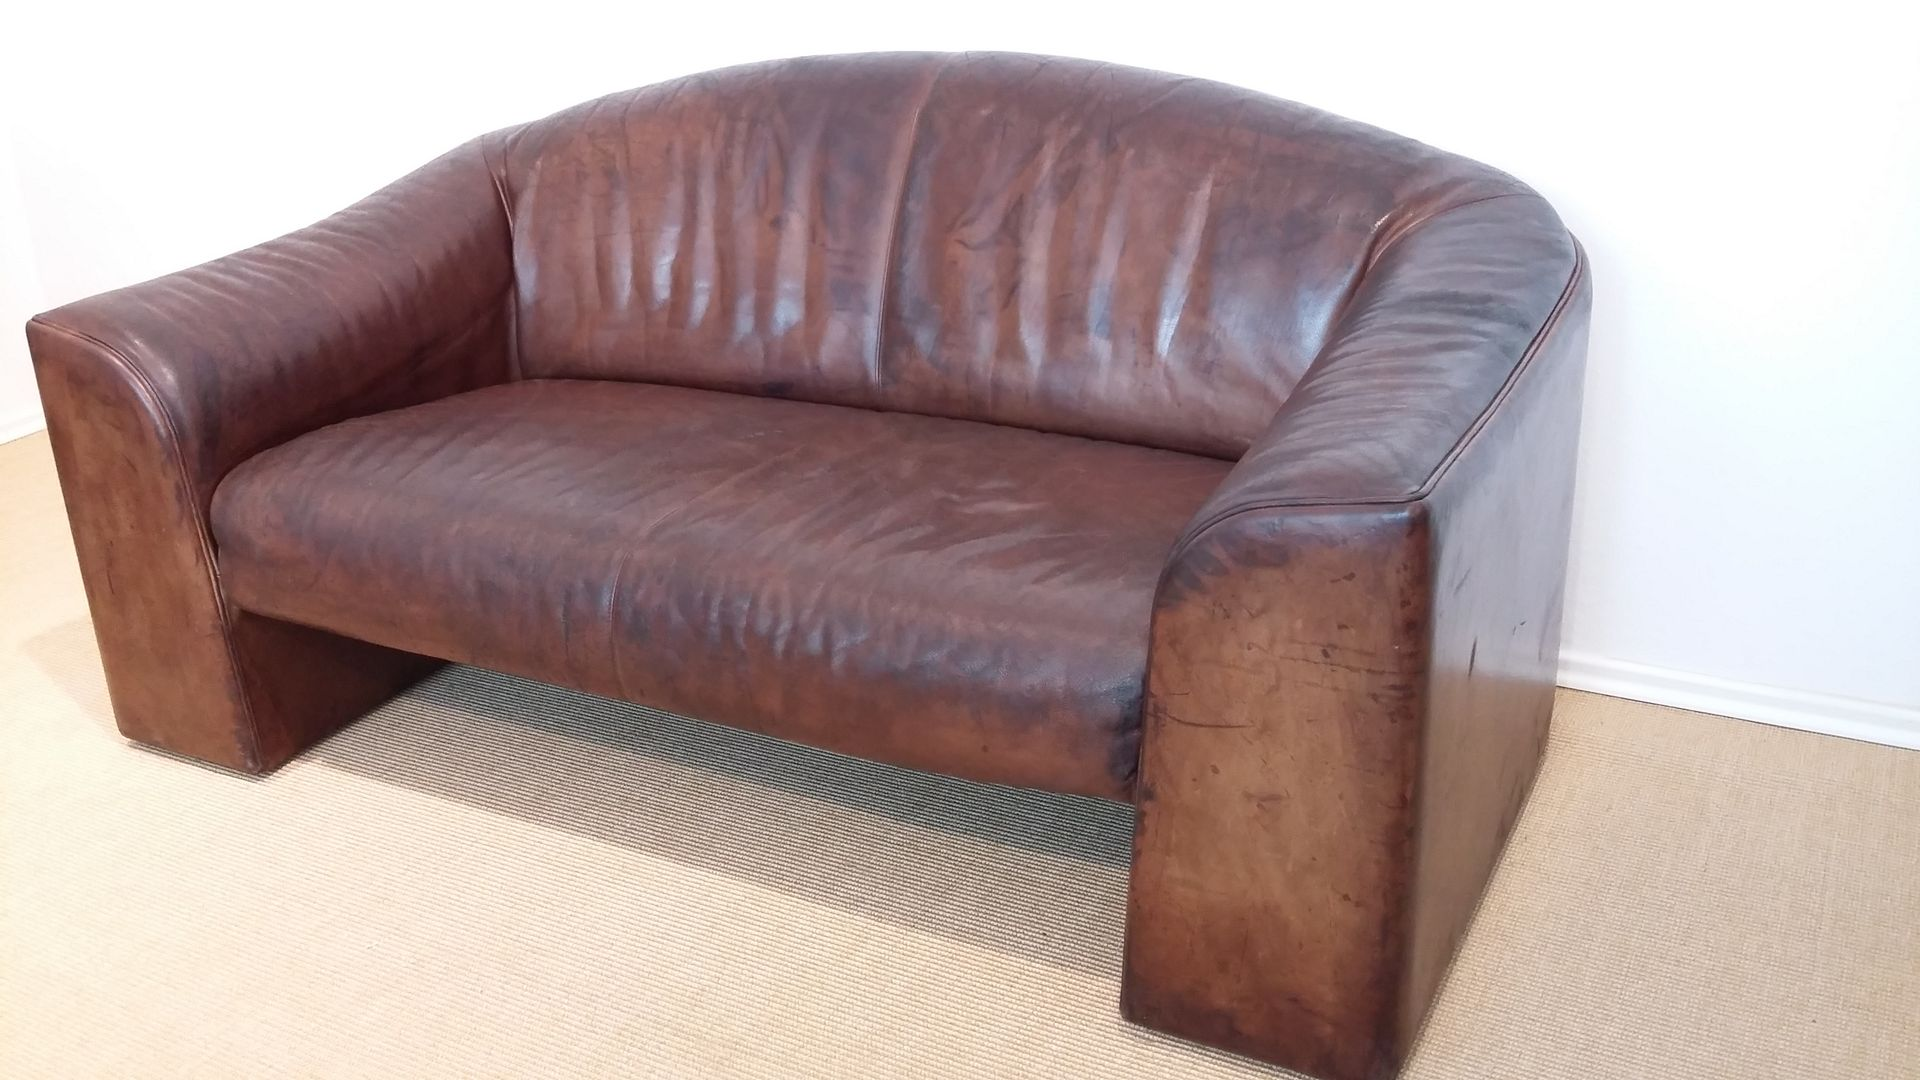 Brown vintage 2 seater leather sofa from de sede 1970s for sale at pamono Vintage tan leather sofa